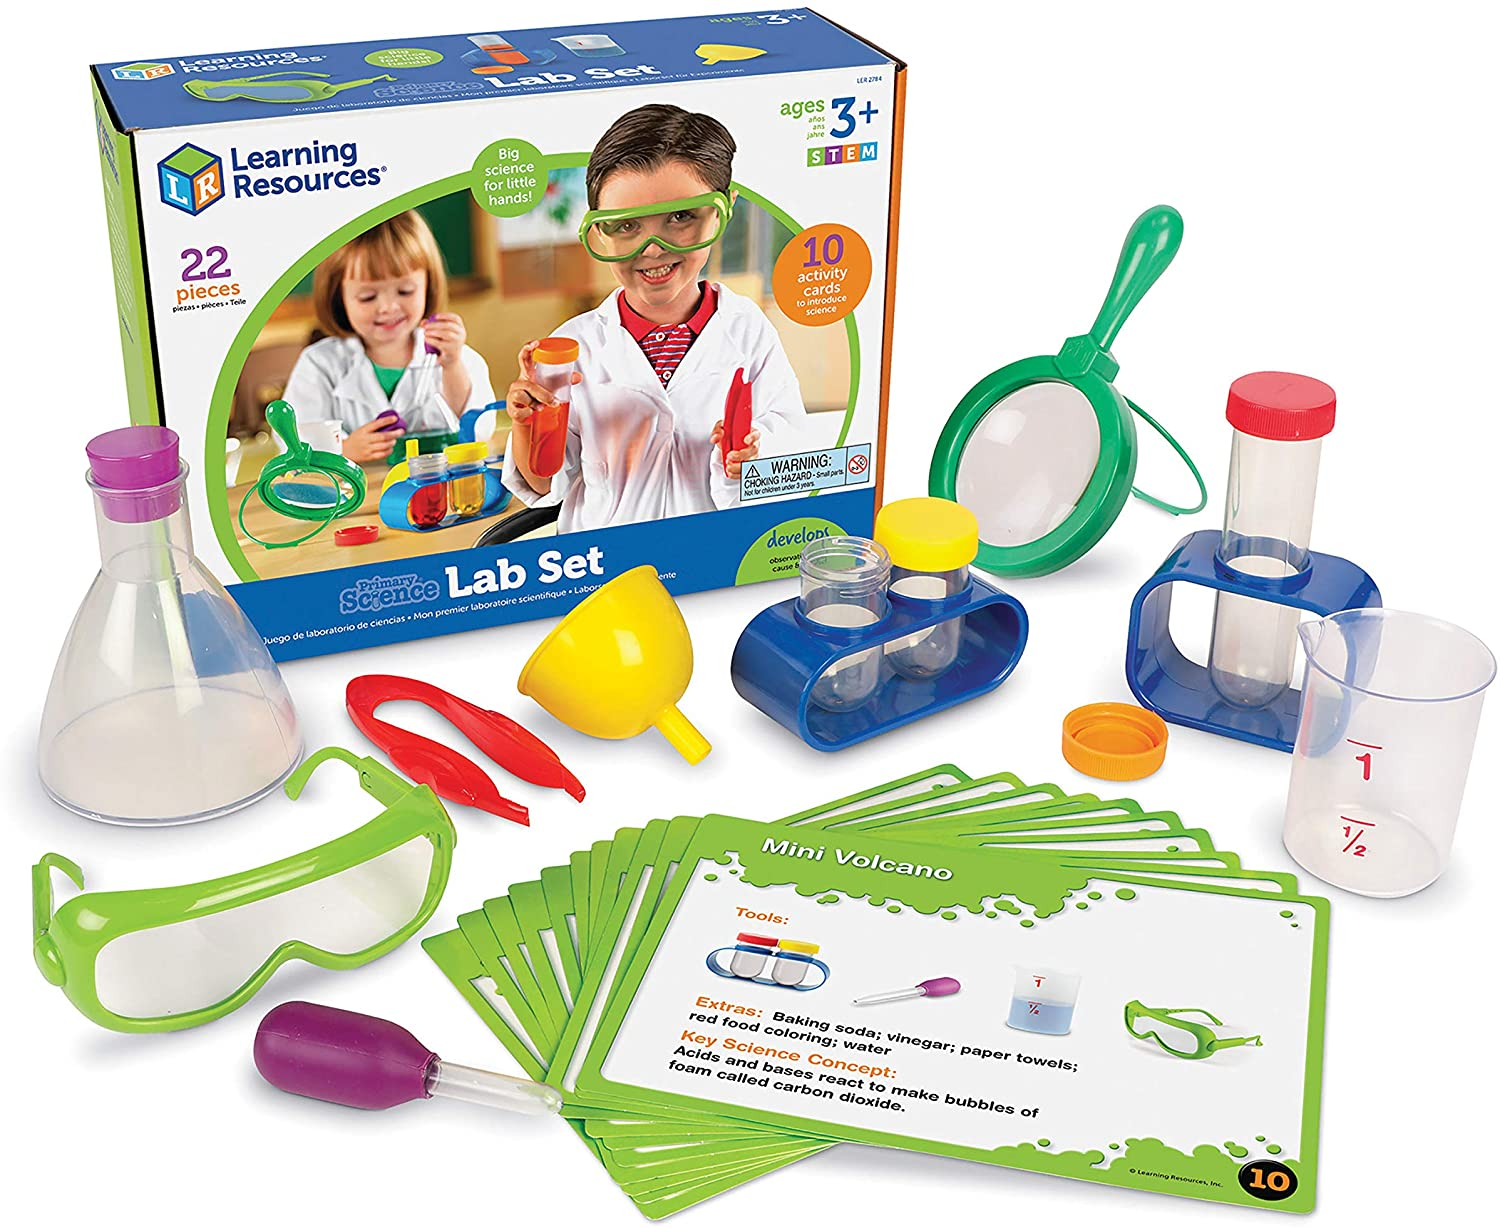 gifts-for-4-year-old-girls-science-lab-set